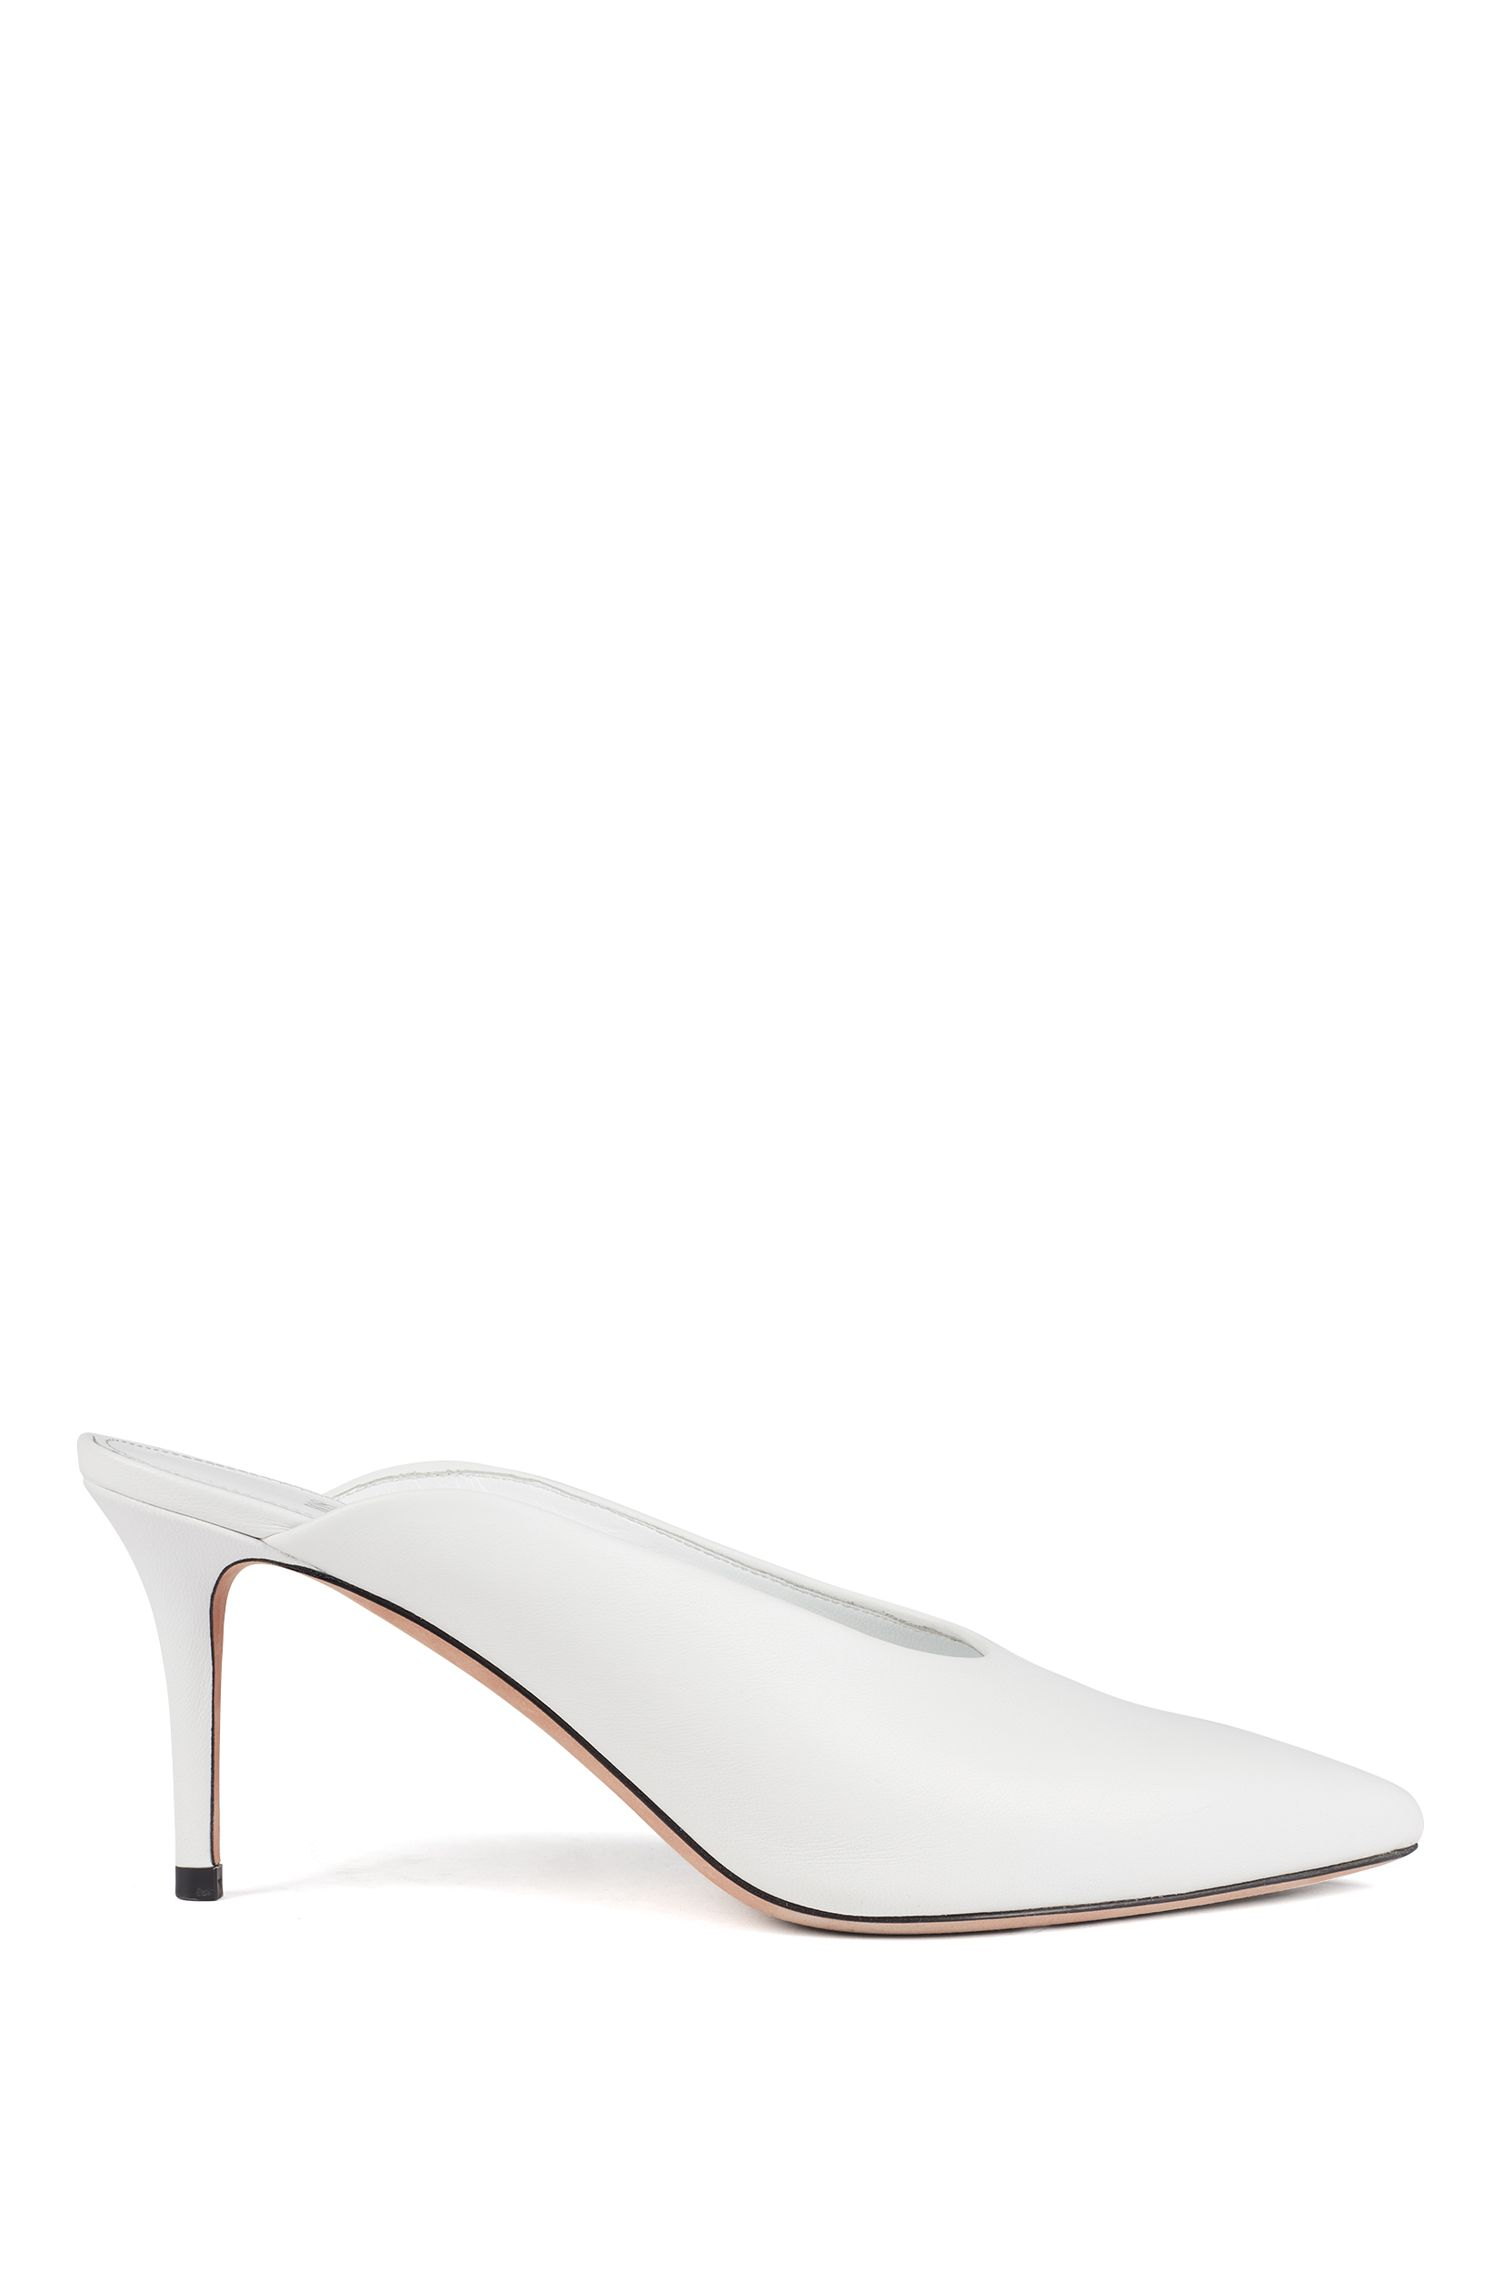 Mid-heel mules in Italian nappa leather, White